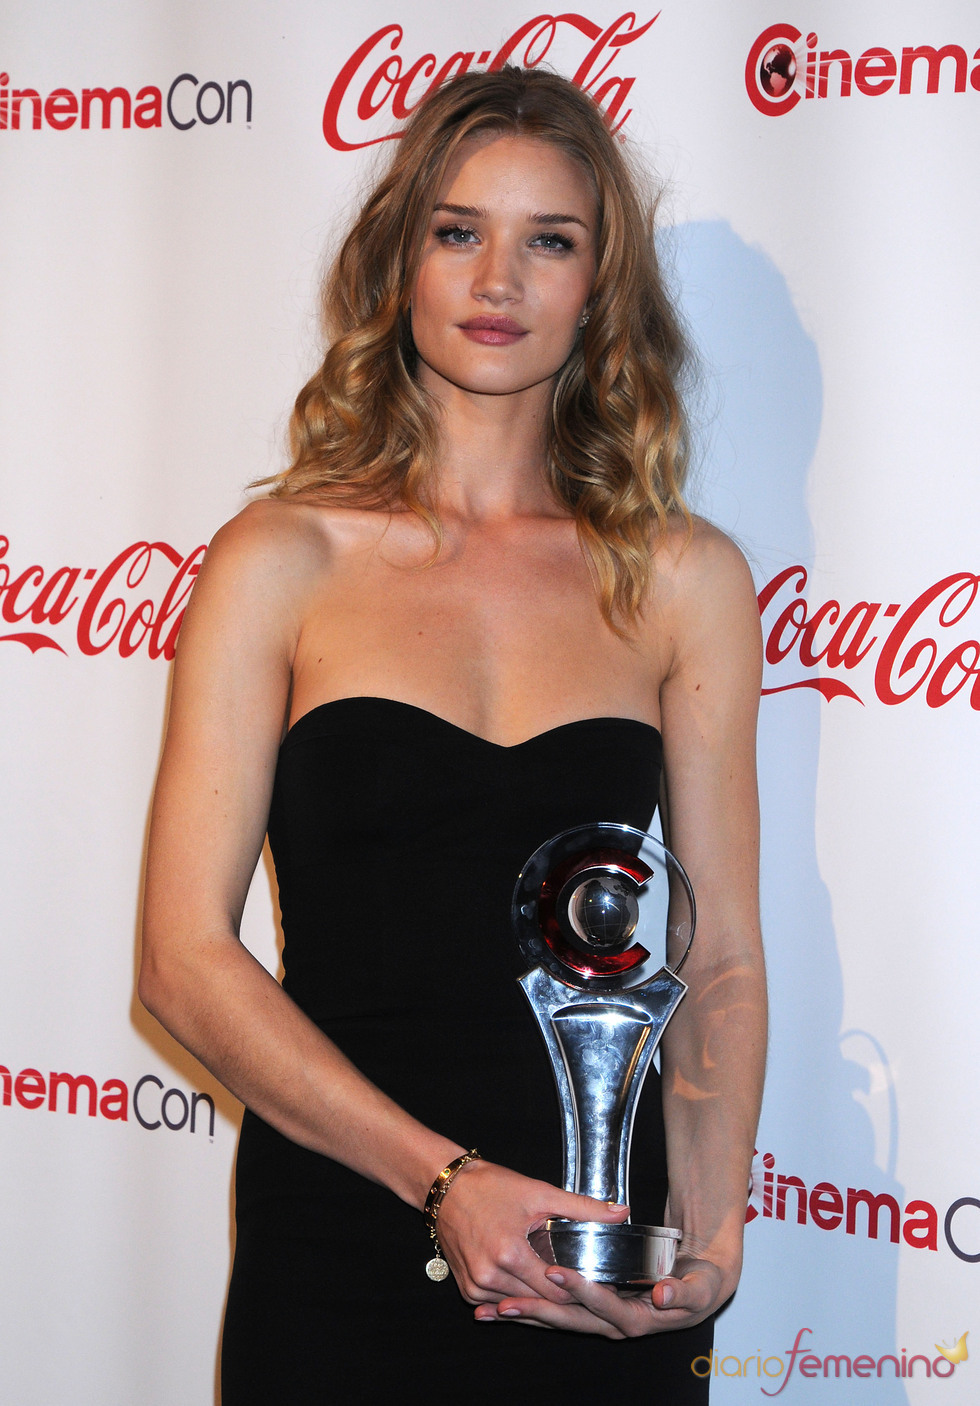 Rosie Huntington-Whiteley posa feliz con su premio en el Festival CinemaCon